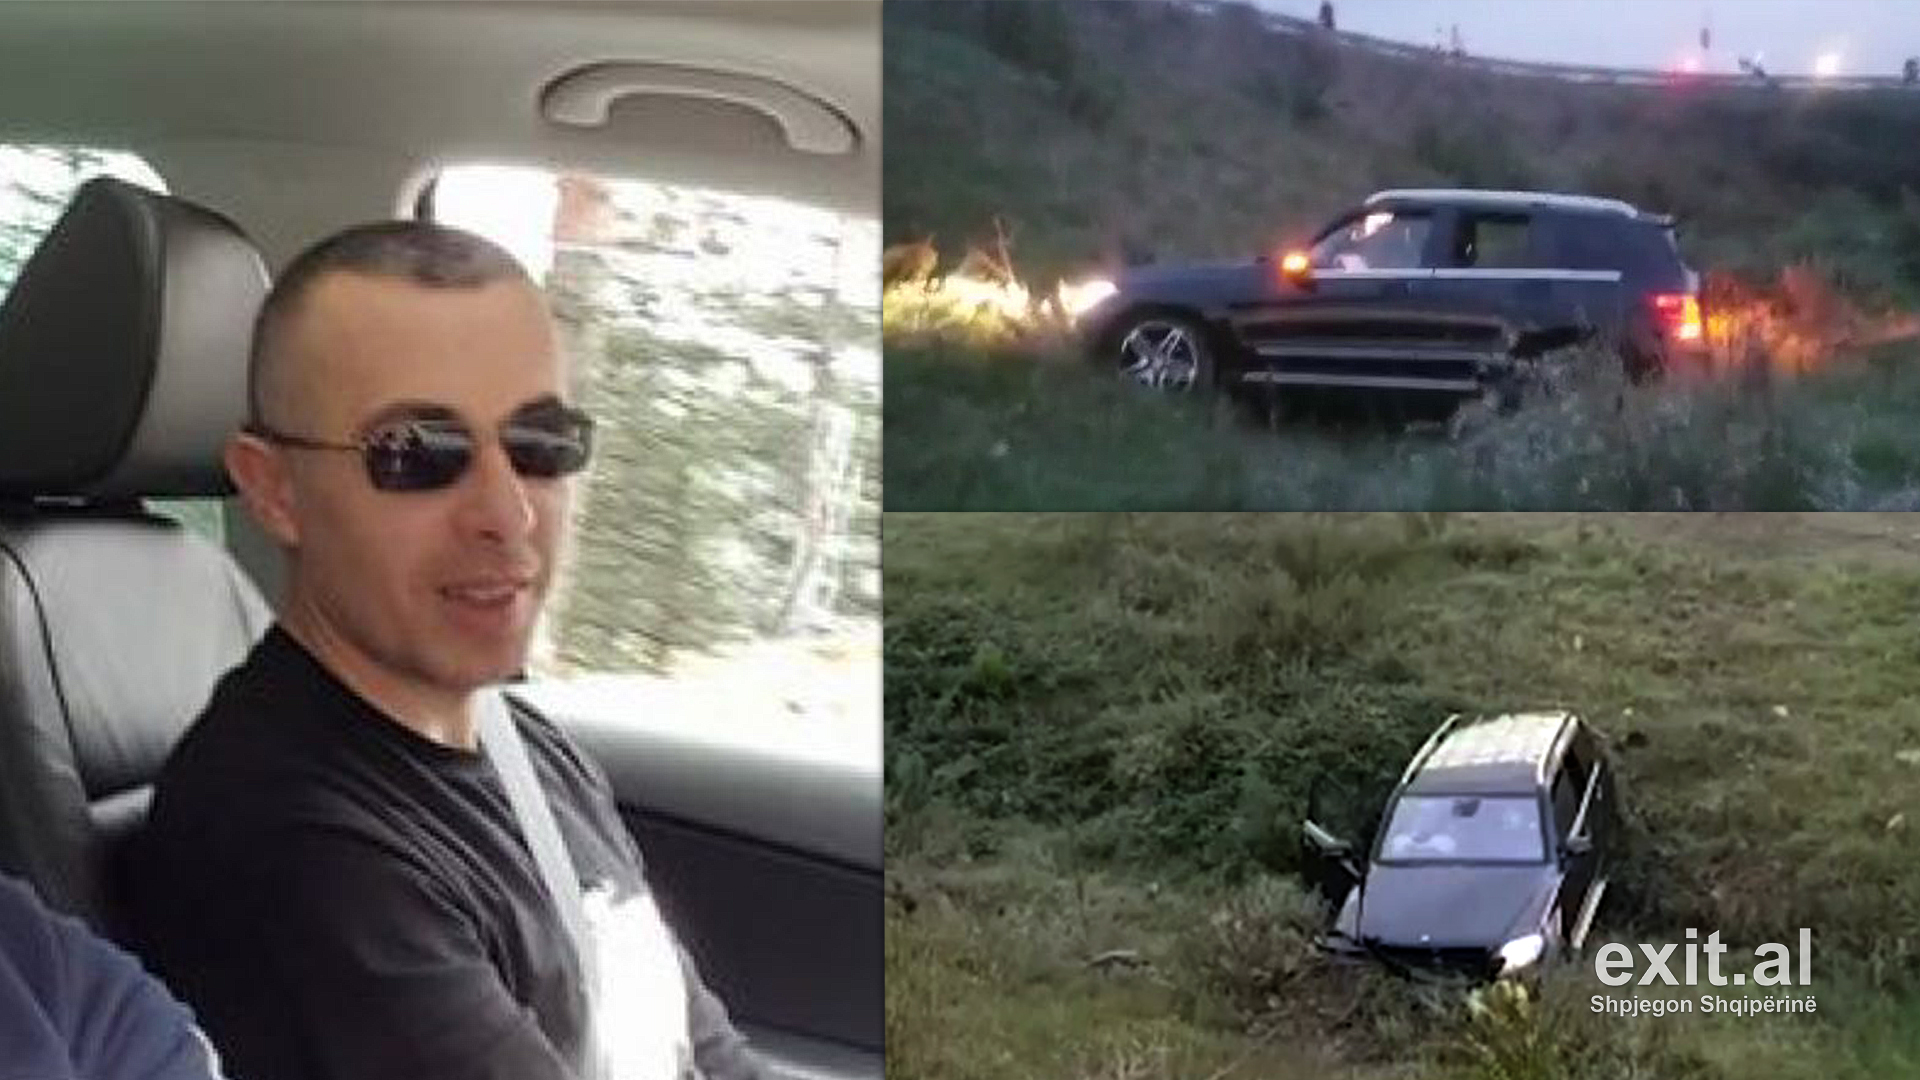 Albanian Prosecutor Verbally Attacked by Prime Minister, Shot in Car